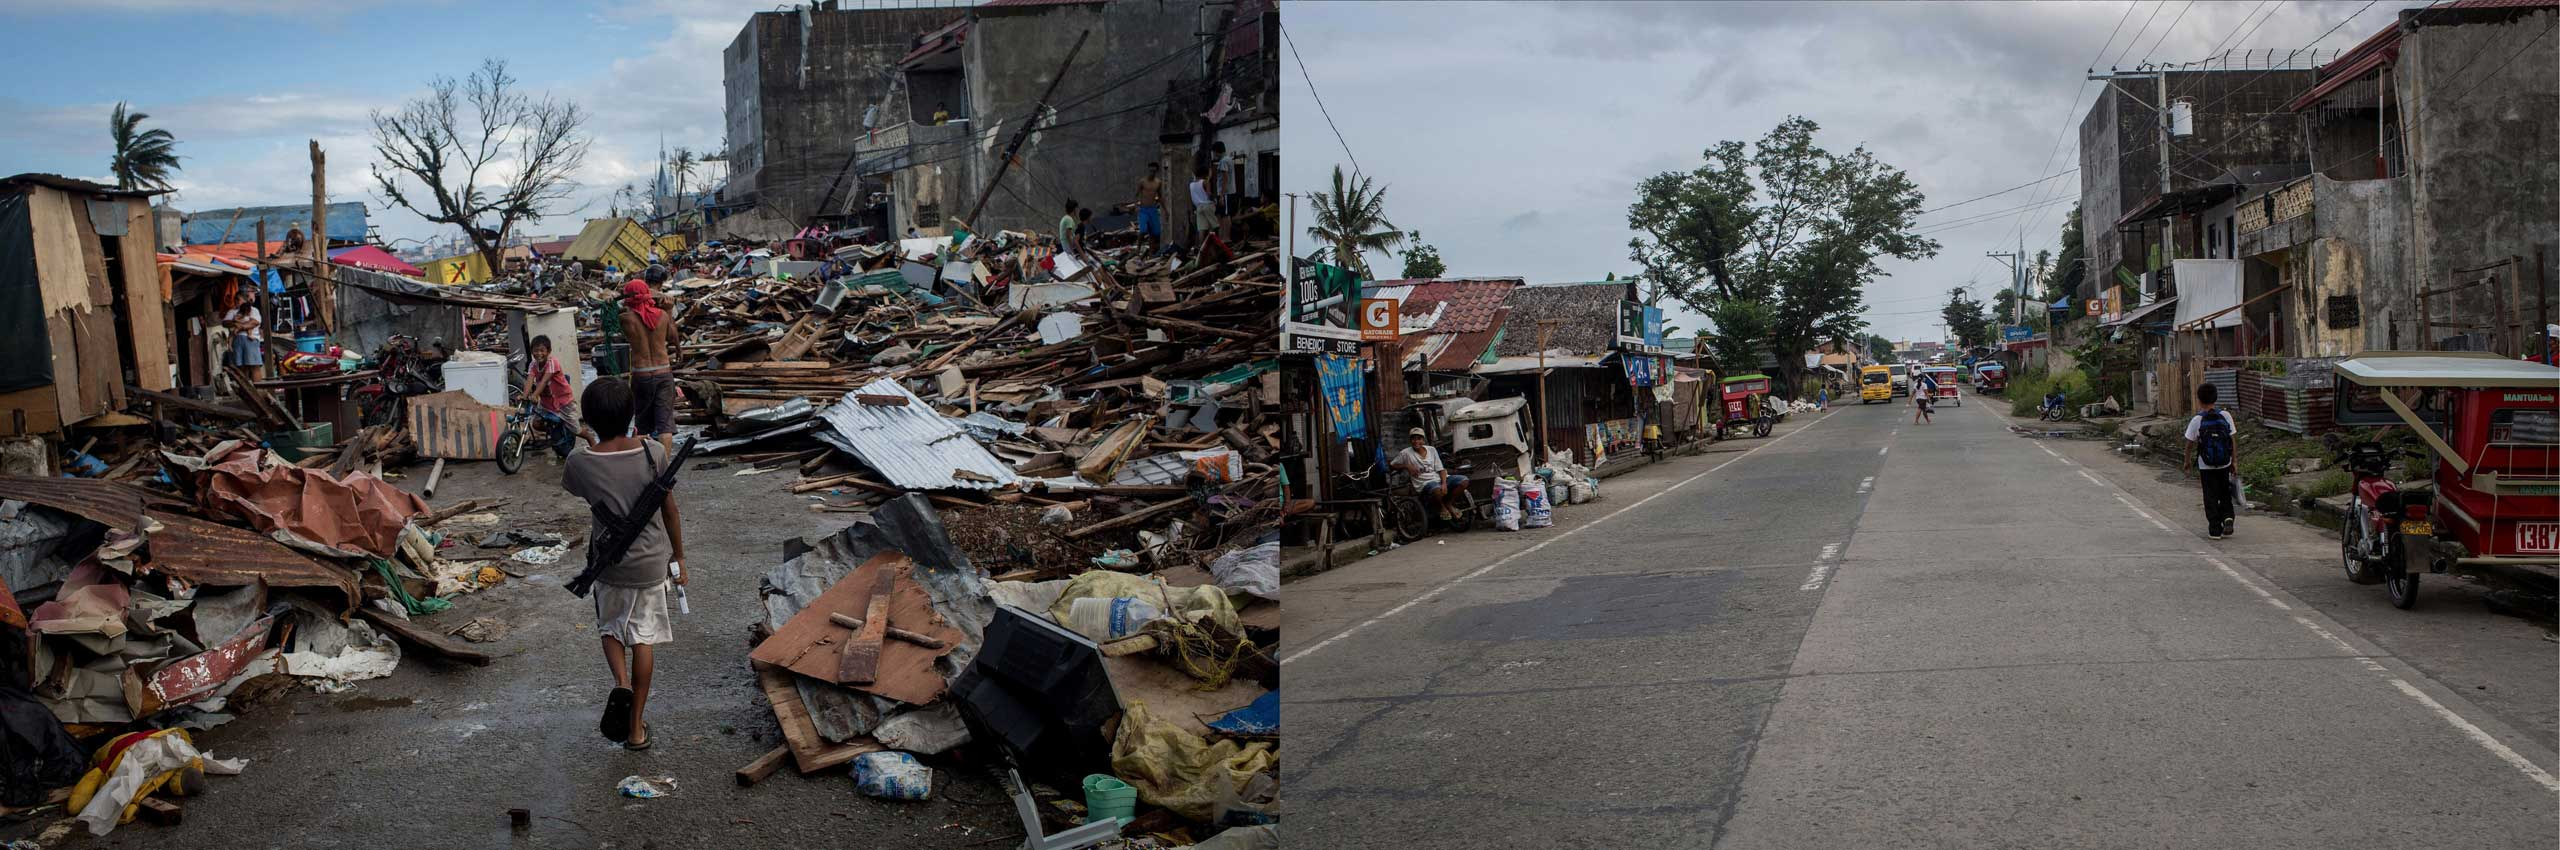 Before: A group of boys play with replica guns amongst debris in Tacloban City following the recent super typhoon on Nov. 17, 2013 in Leyte, Philippines.After: View of the main road in Anibong district one year after Typhoon Haiyan on Nov. 3, 2014.